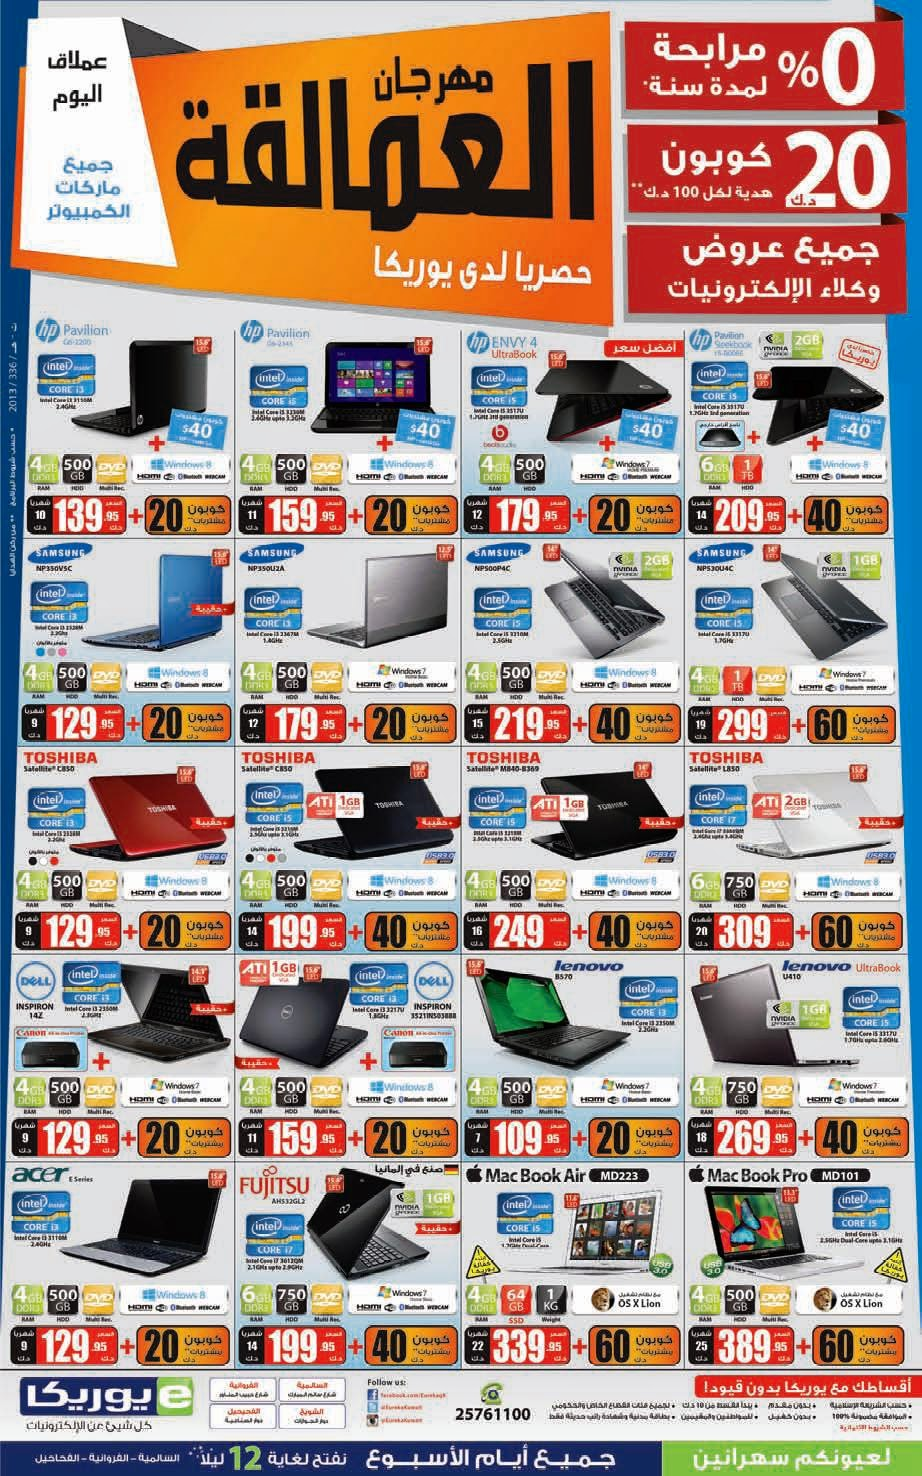 Eureka Mega Offers on Laptop Computers ~ Kuwait Flyers